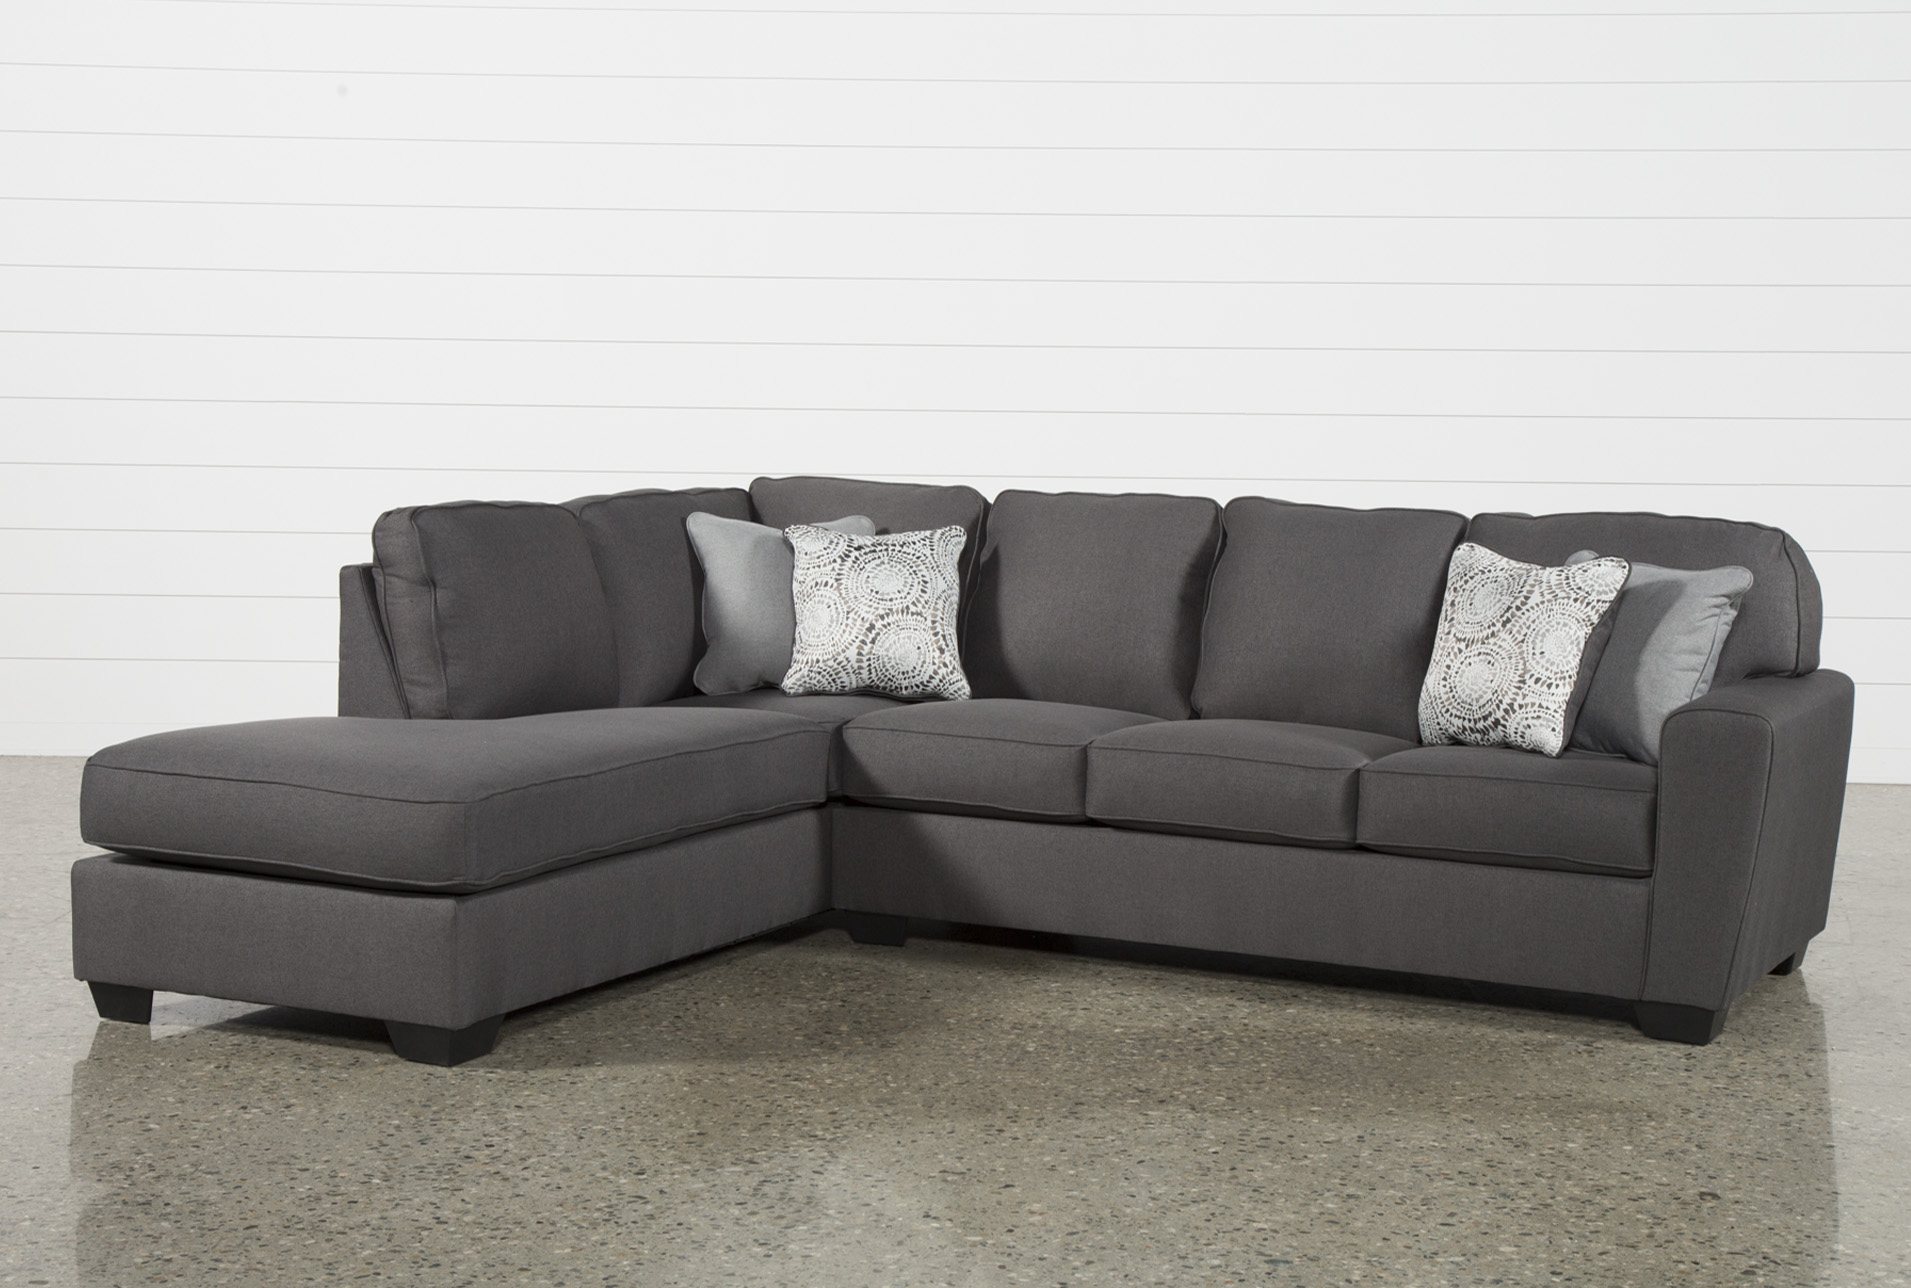 Mcdade Graphite 2 Piece Sectional W/Laf Chaise   360